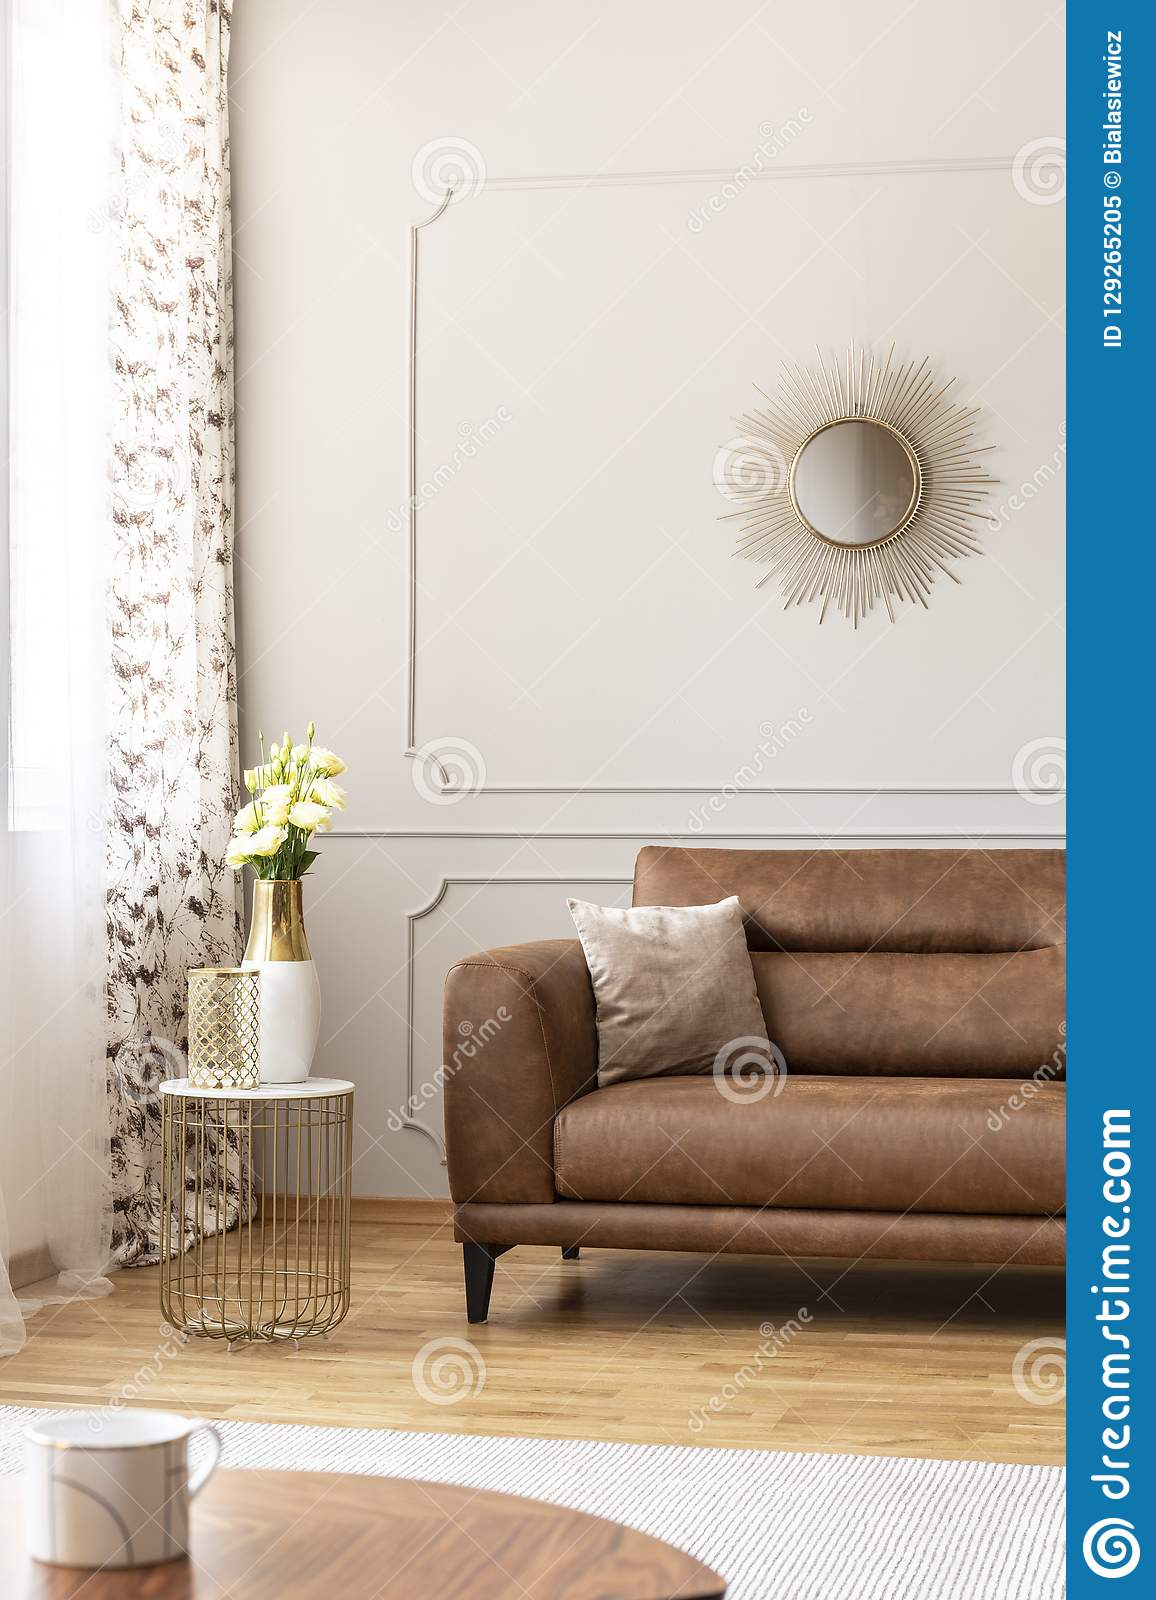 Stylish table with vase with flowers on it next to comfortable leather couch with beige pillow in luxury living room interior